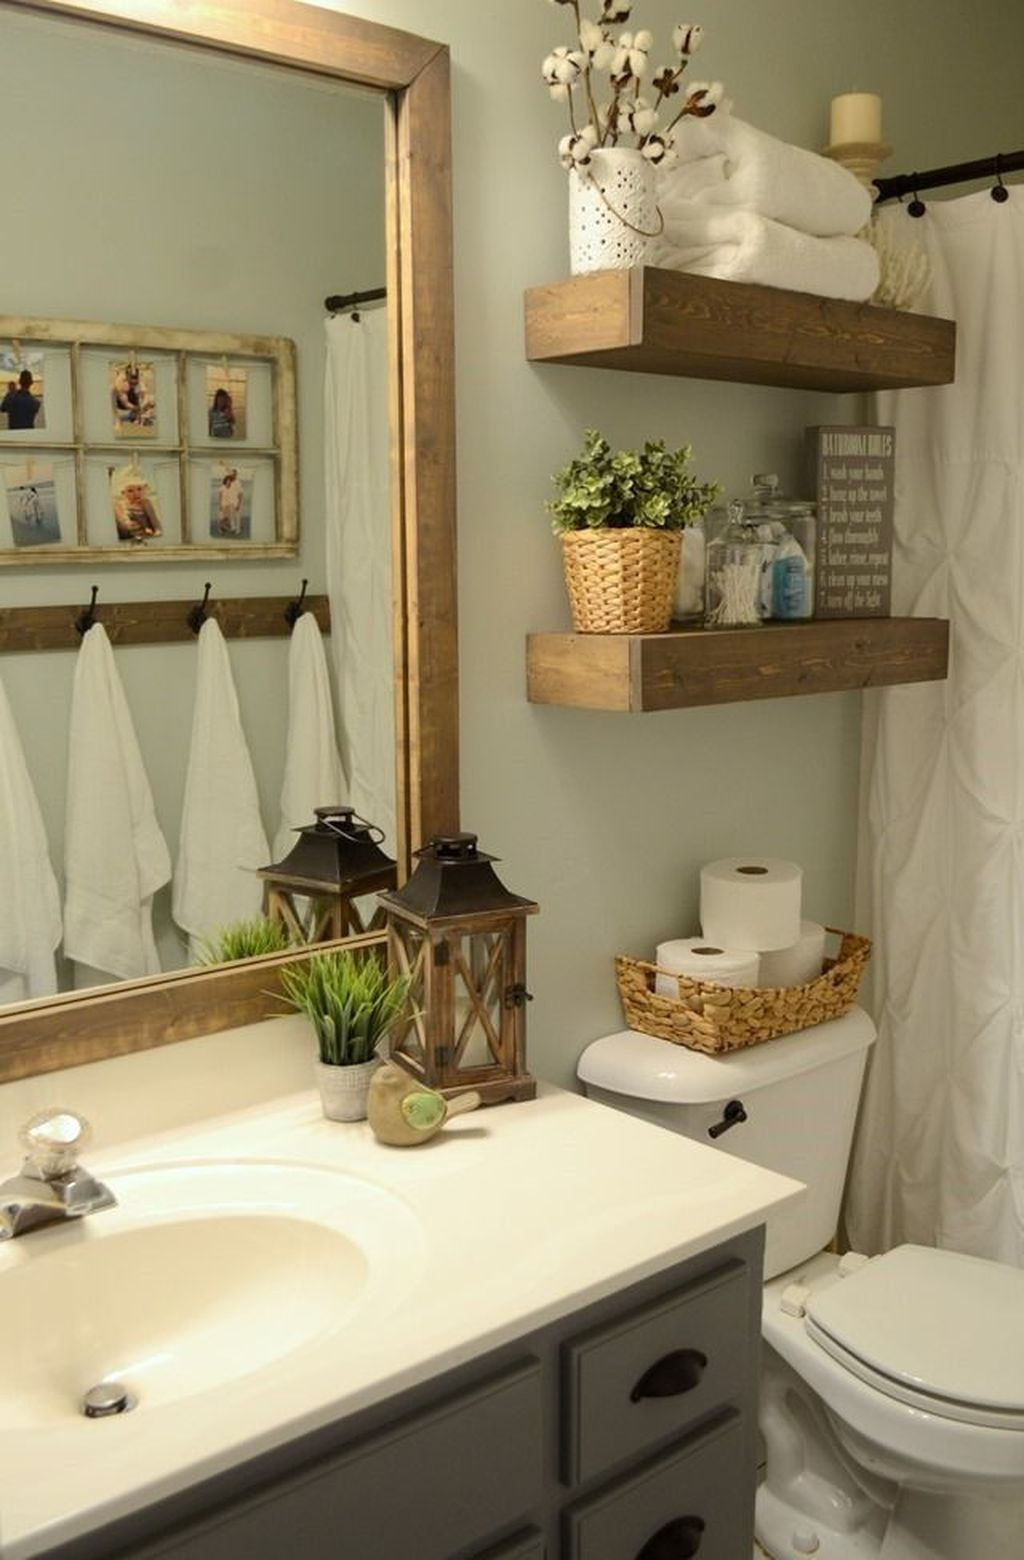 Delightful Bathroom Storage Design Ideas02